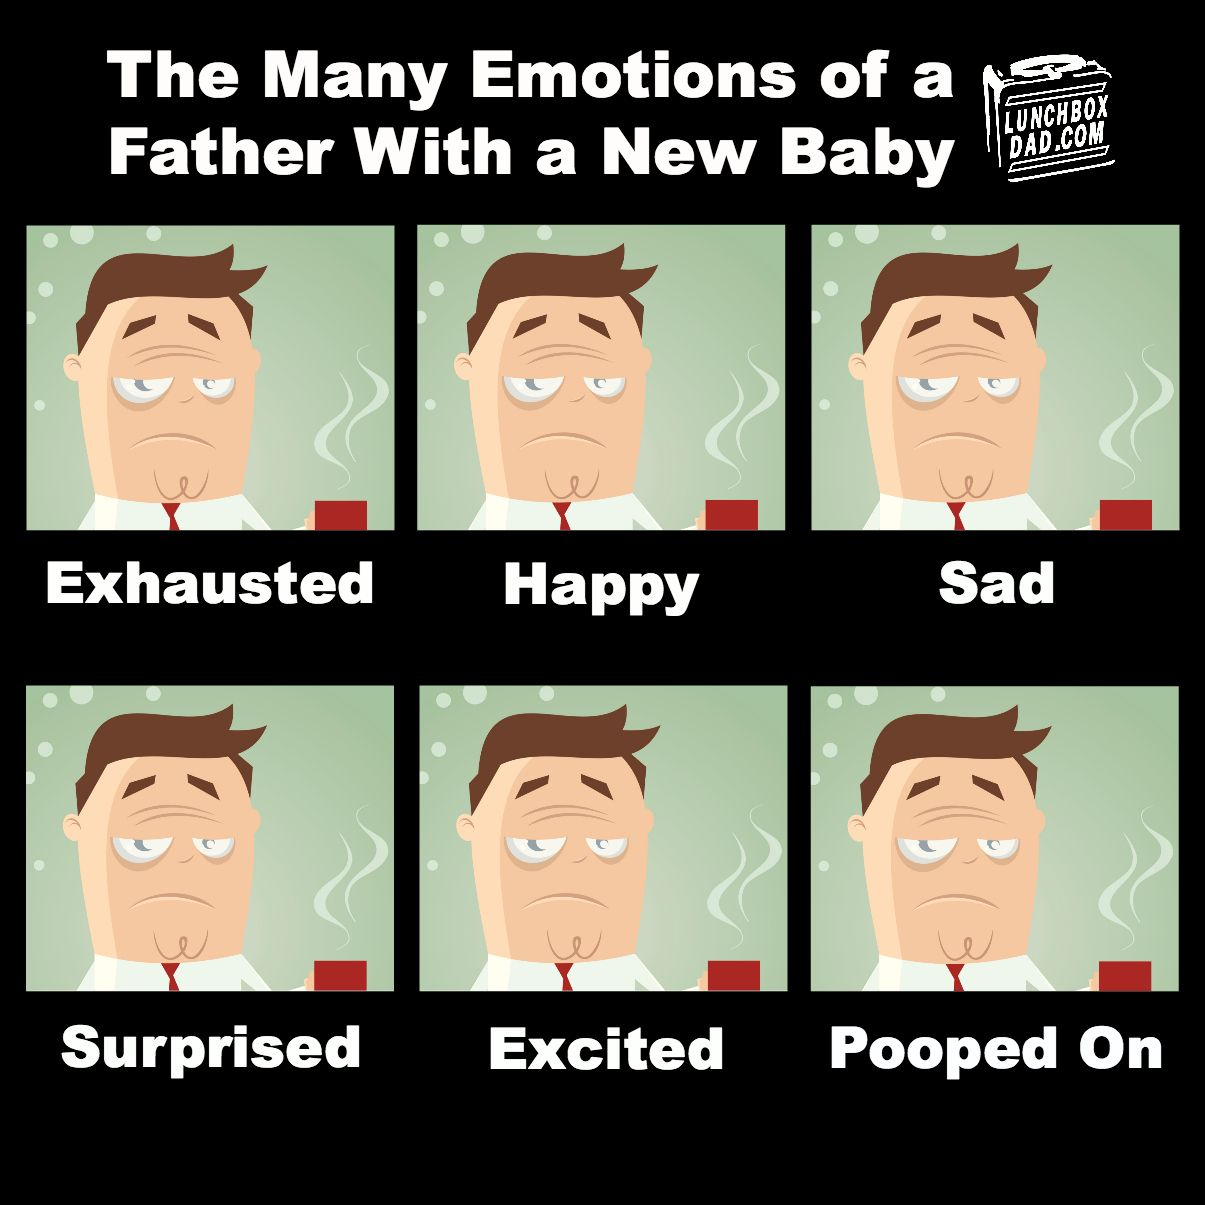 Funny New Dad Meme : Lunchbox dad the many emotions of a father with new